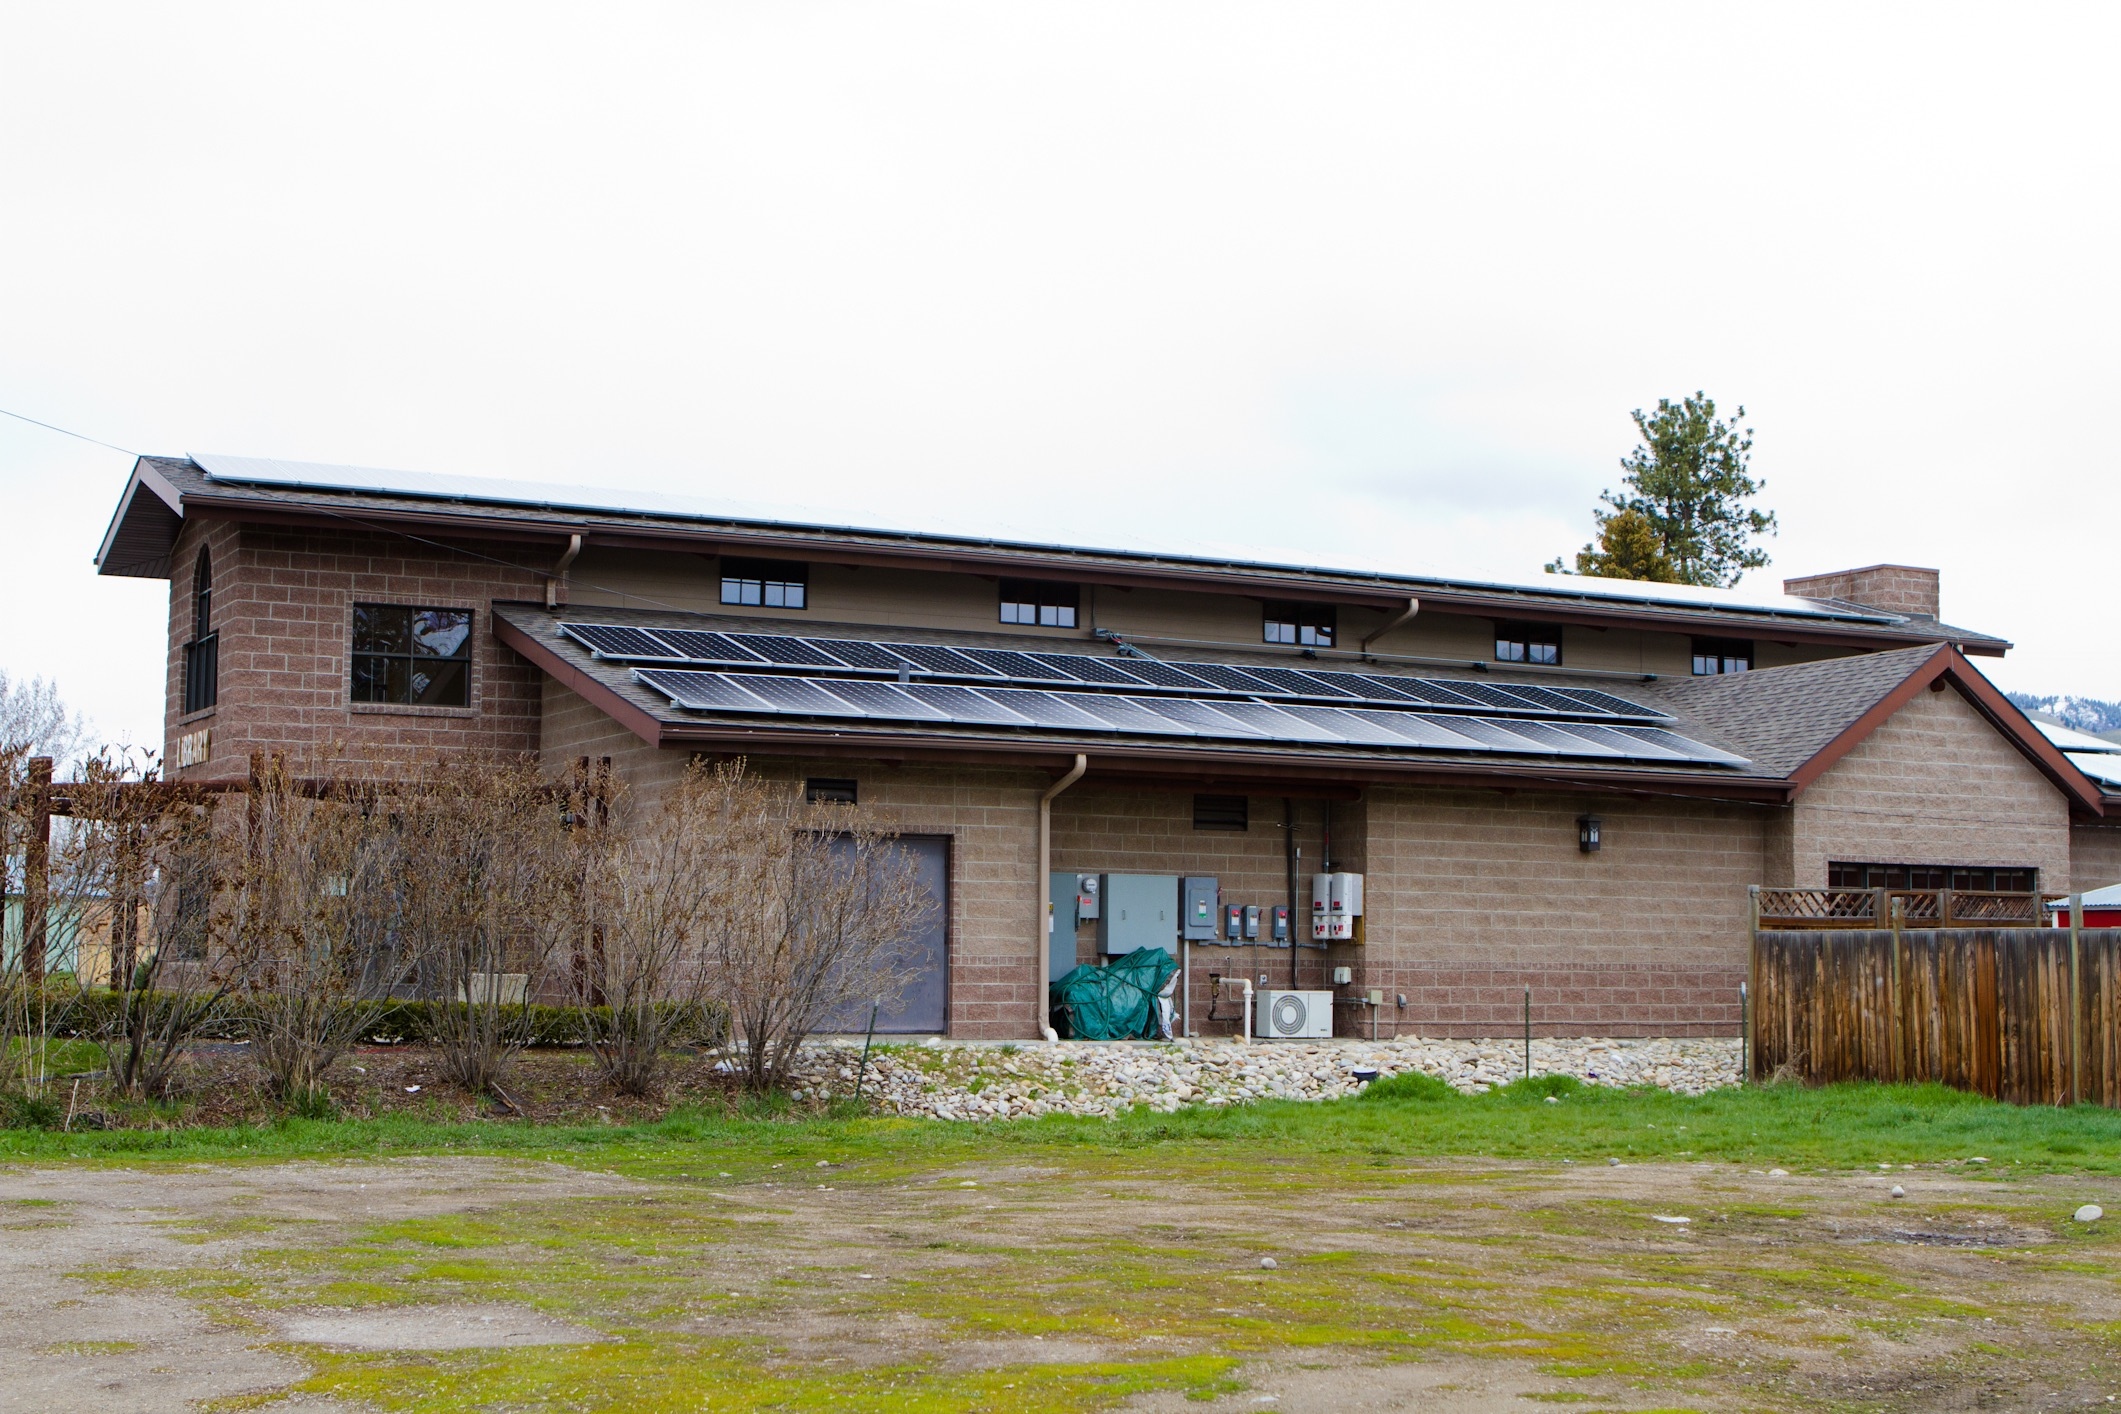 Darby Community Public Library to generate 88% of needs from solar PV